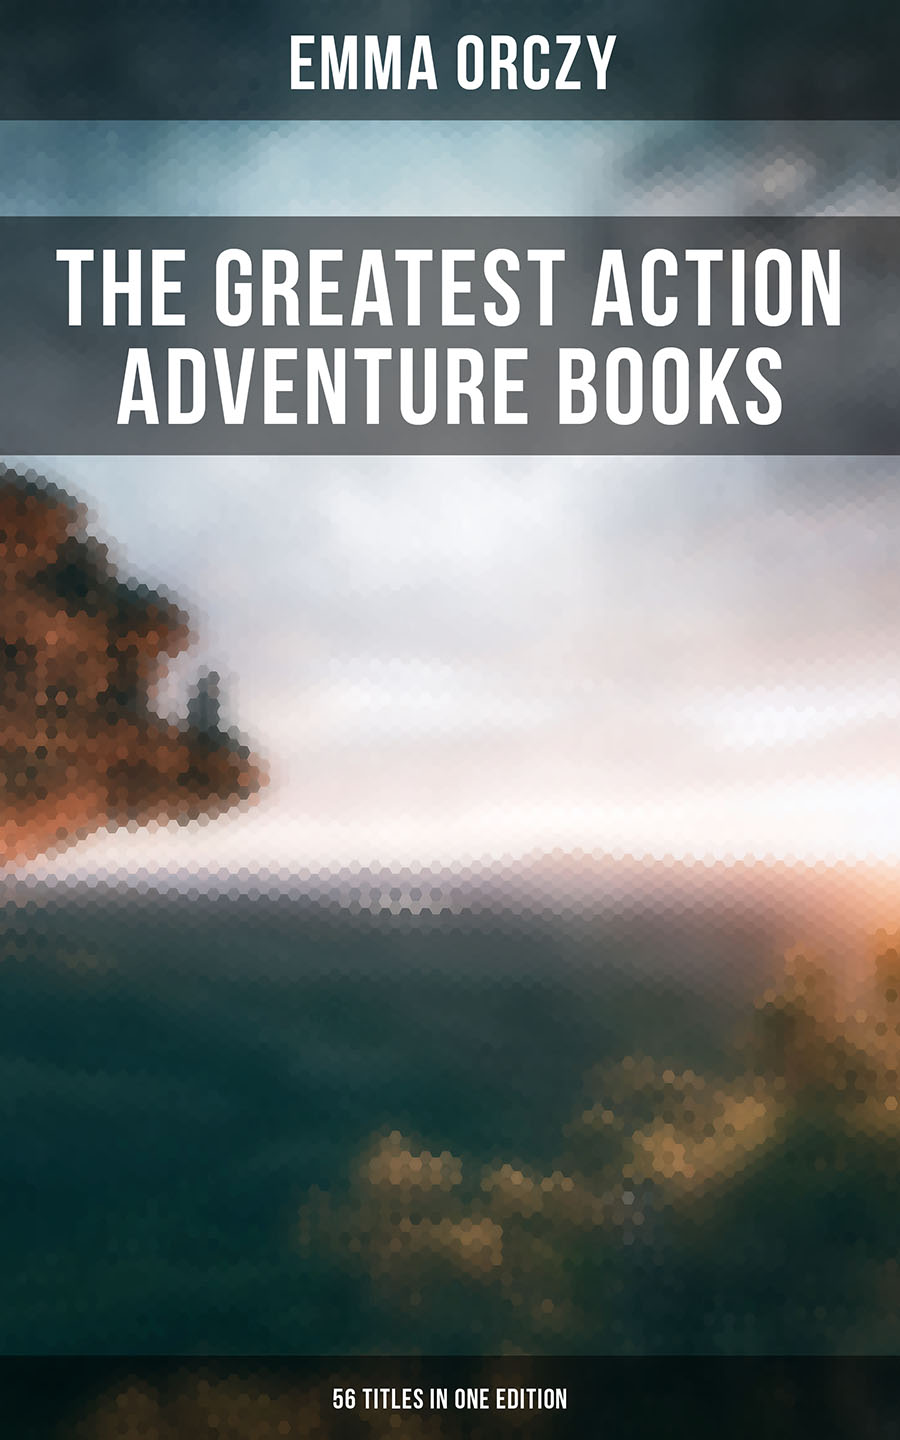 Emma Orczy The Greatest Action Adventure Books of Emma Orczy - 56 Titles in One Edition emma orczy the tangled skein